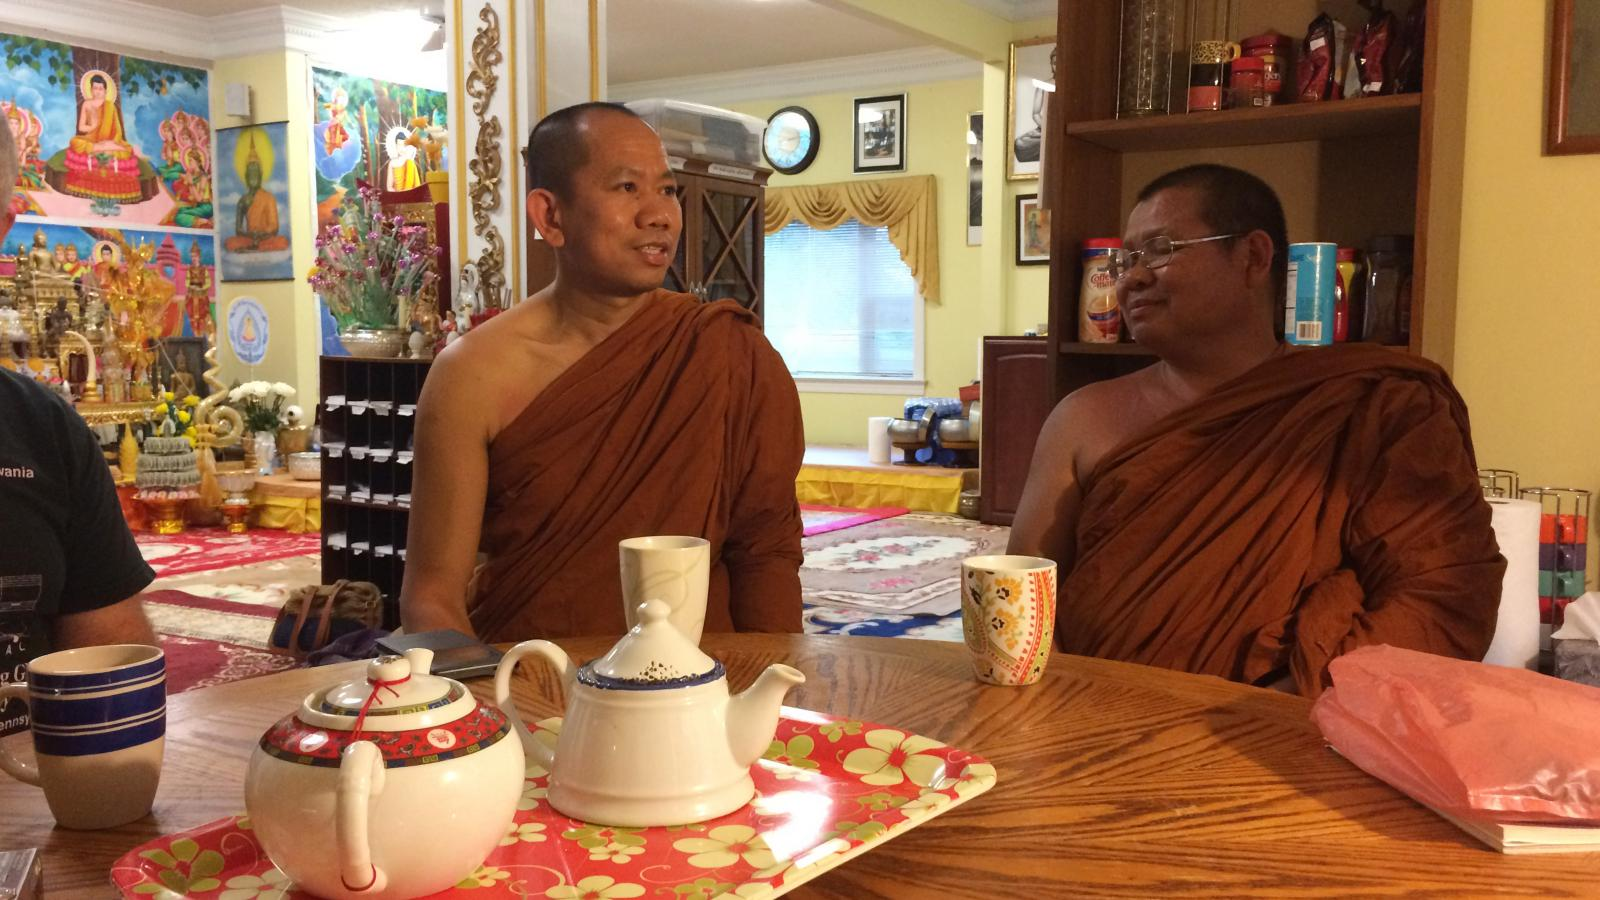 After the chanting and meditating session the house monks, Ajanh Sun Palee and Ajanh Thong Dee, have an opportunity to practice their English conversation skills over tea with guests.